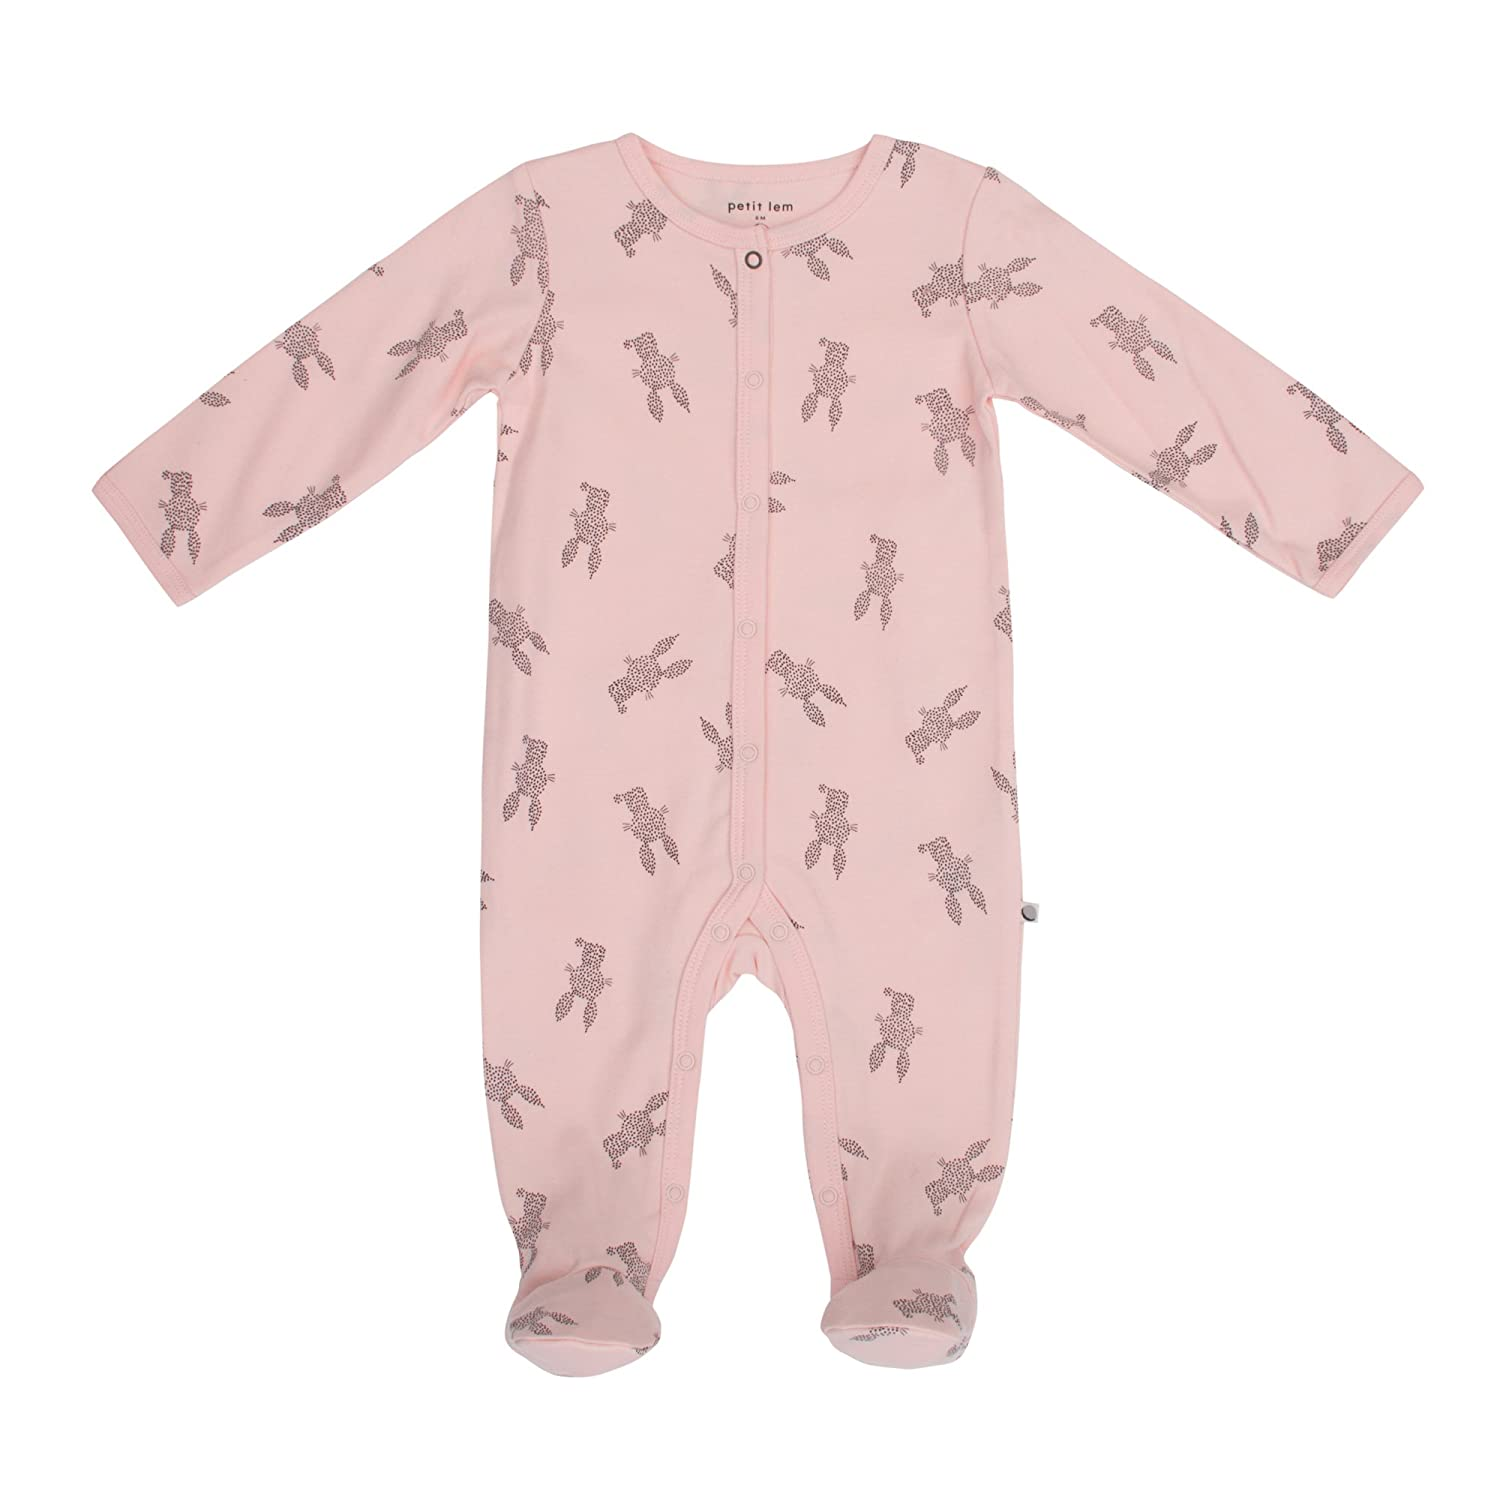 Softand Cute Onesie Pajamas Petit Lem Girls Baby Sleeper Organic Cotton